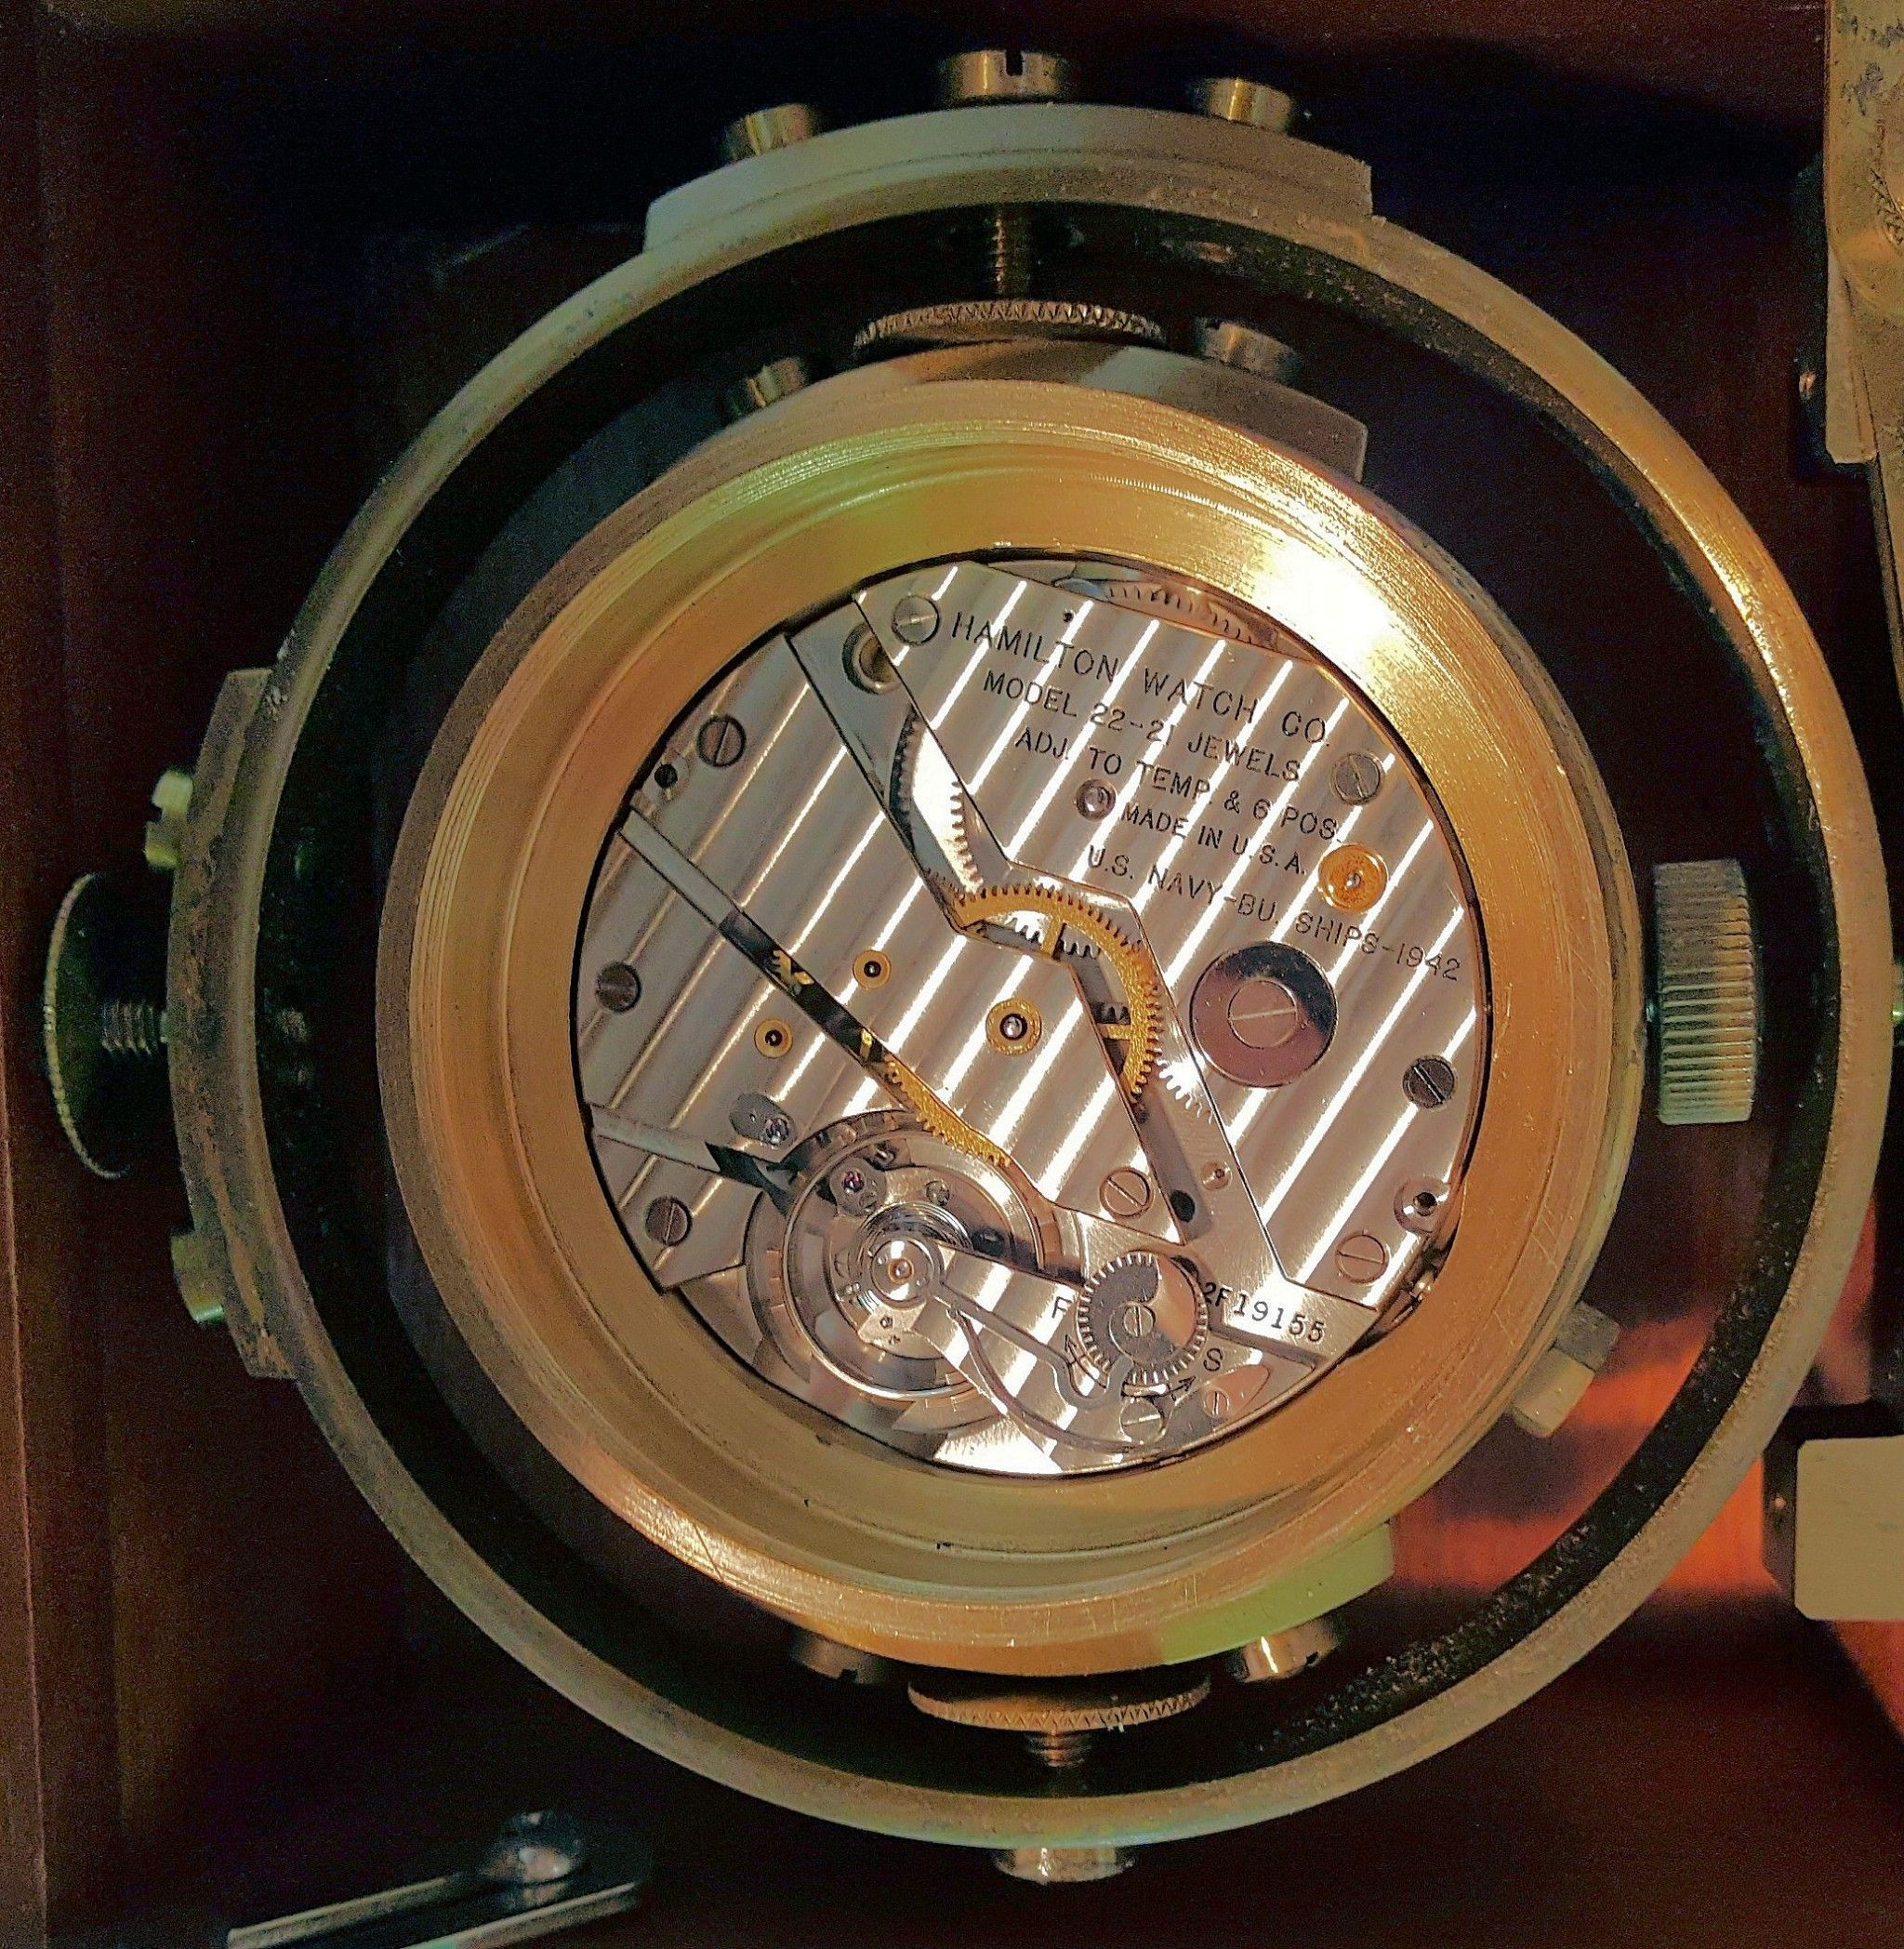 Movement of this Hamilton M 22 deck clock image